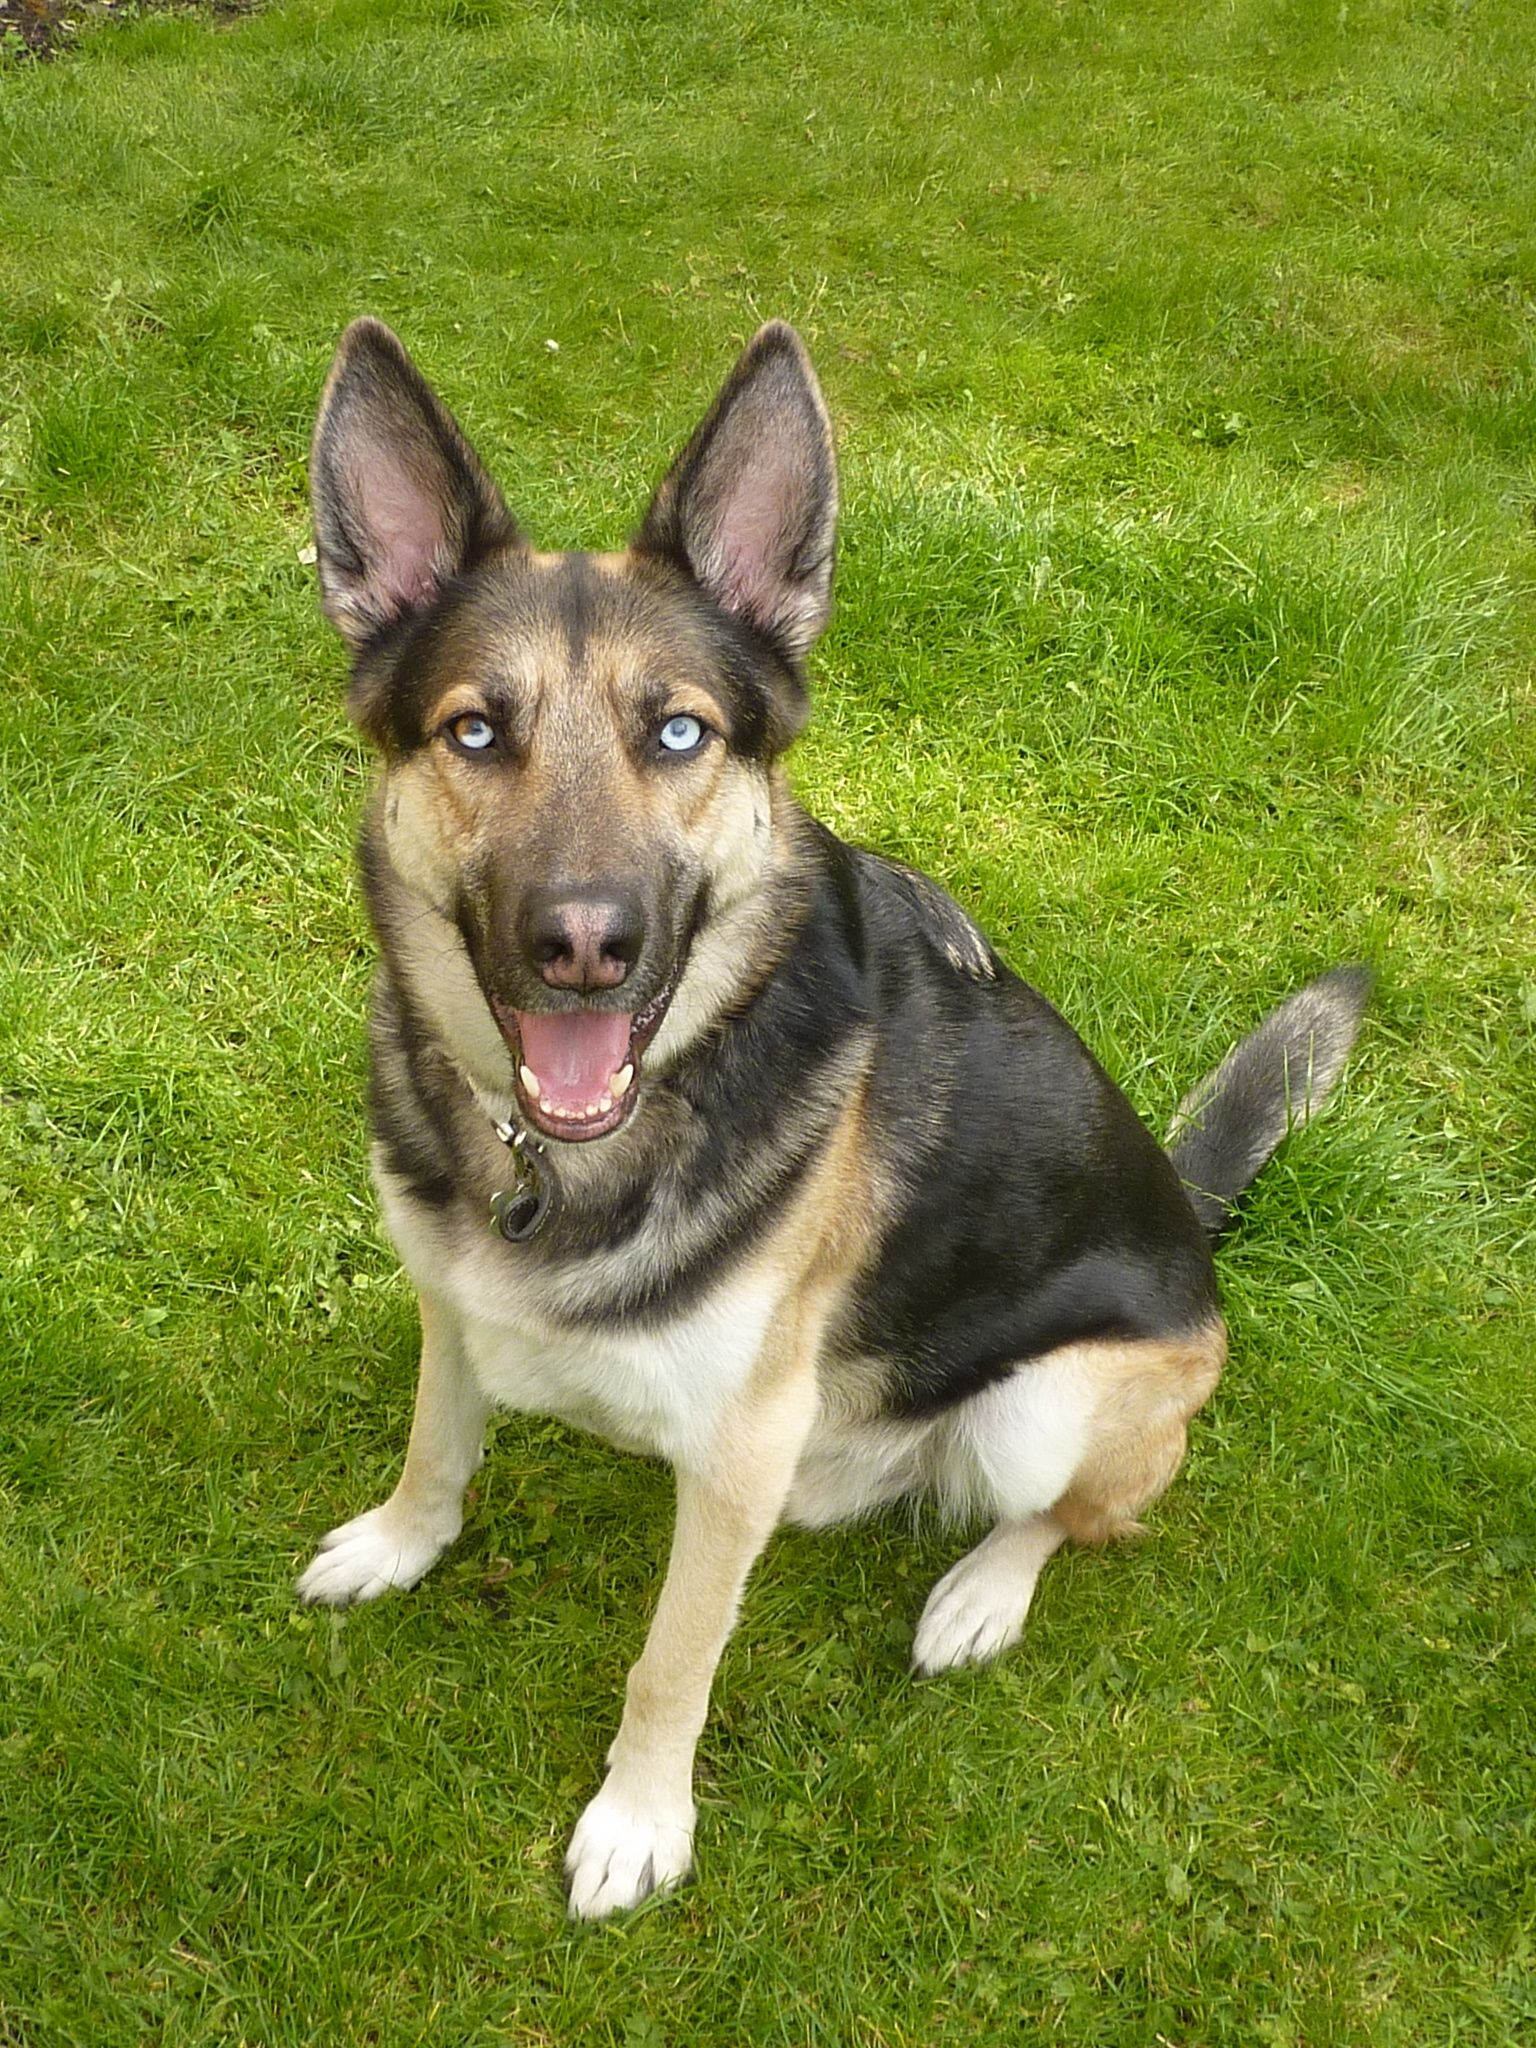 A picture of a lovely dog, a cross between a husky and an German shepherd